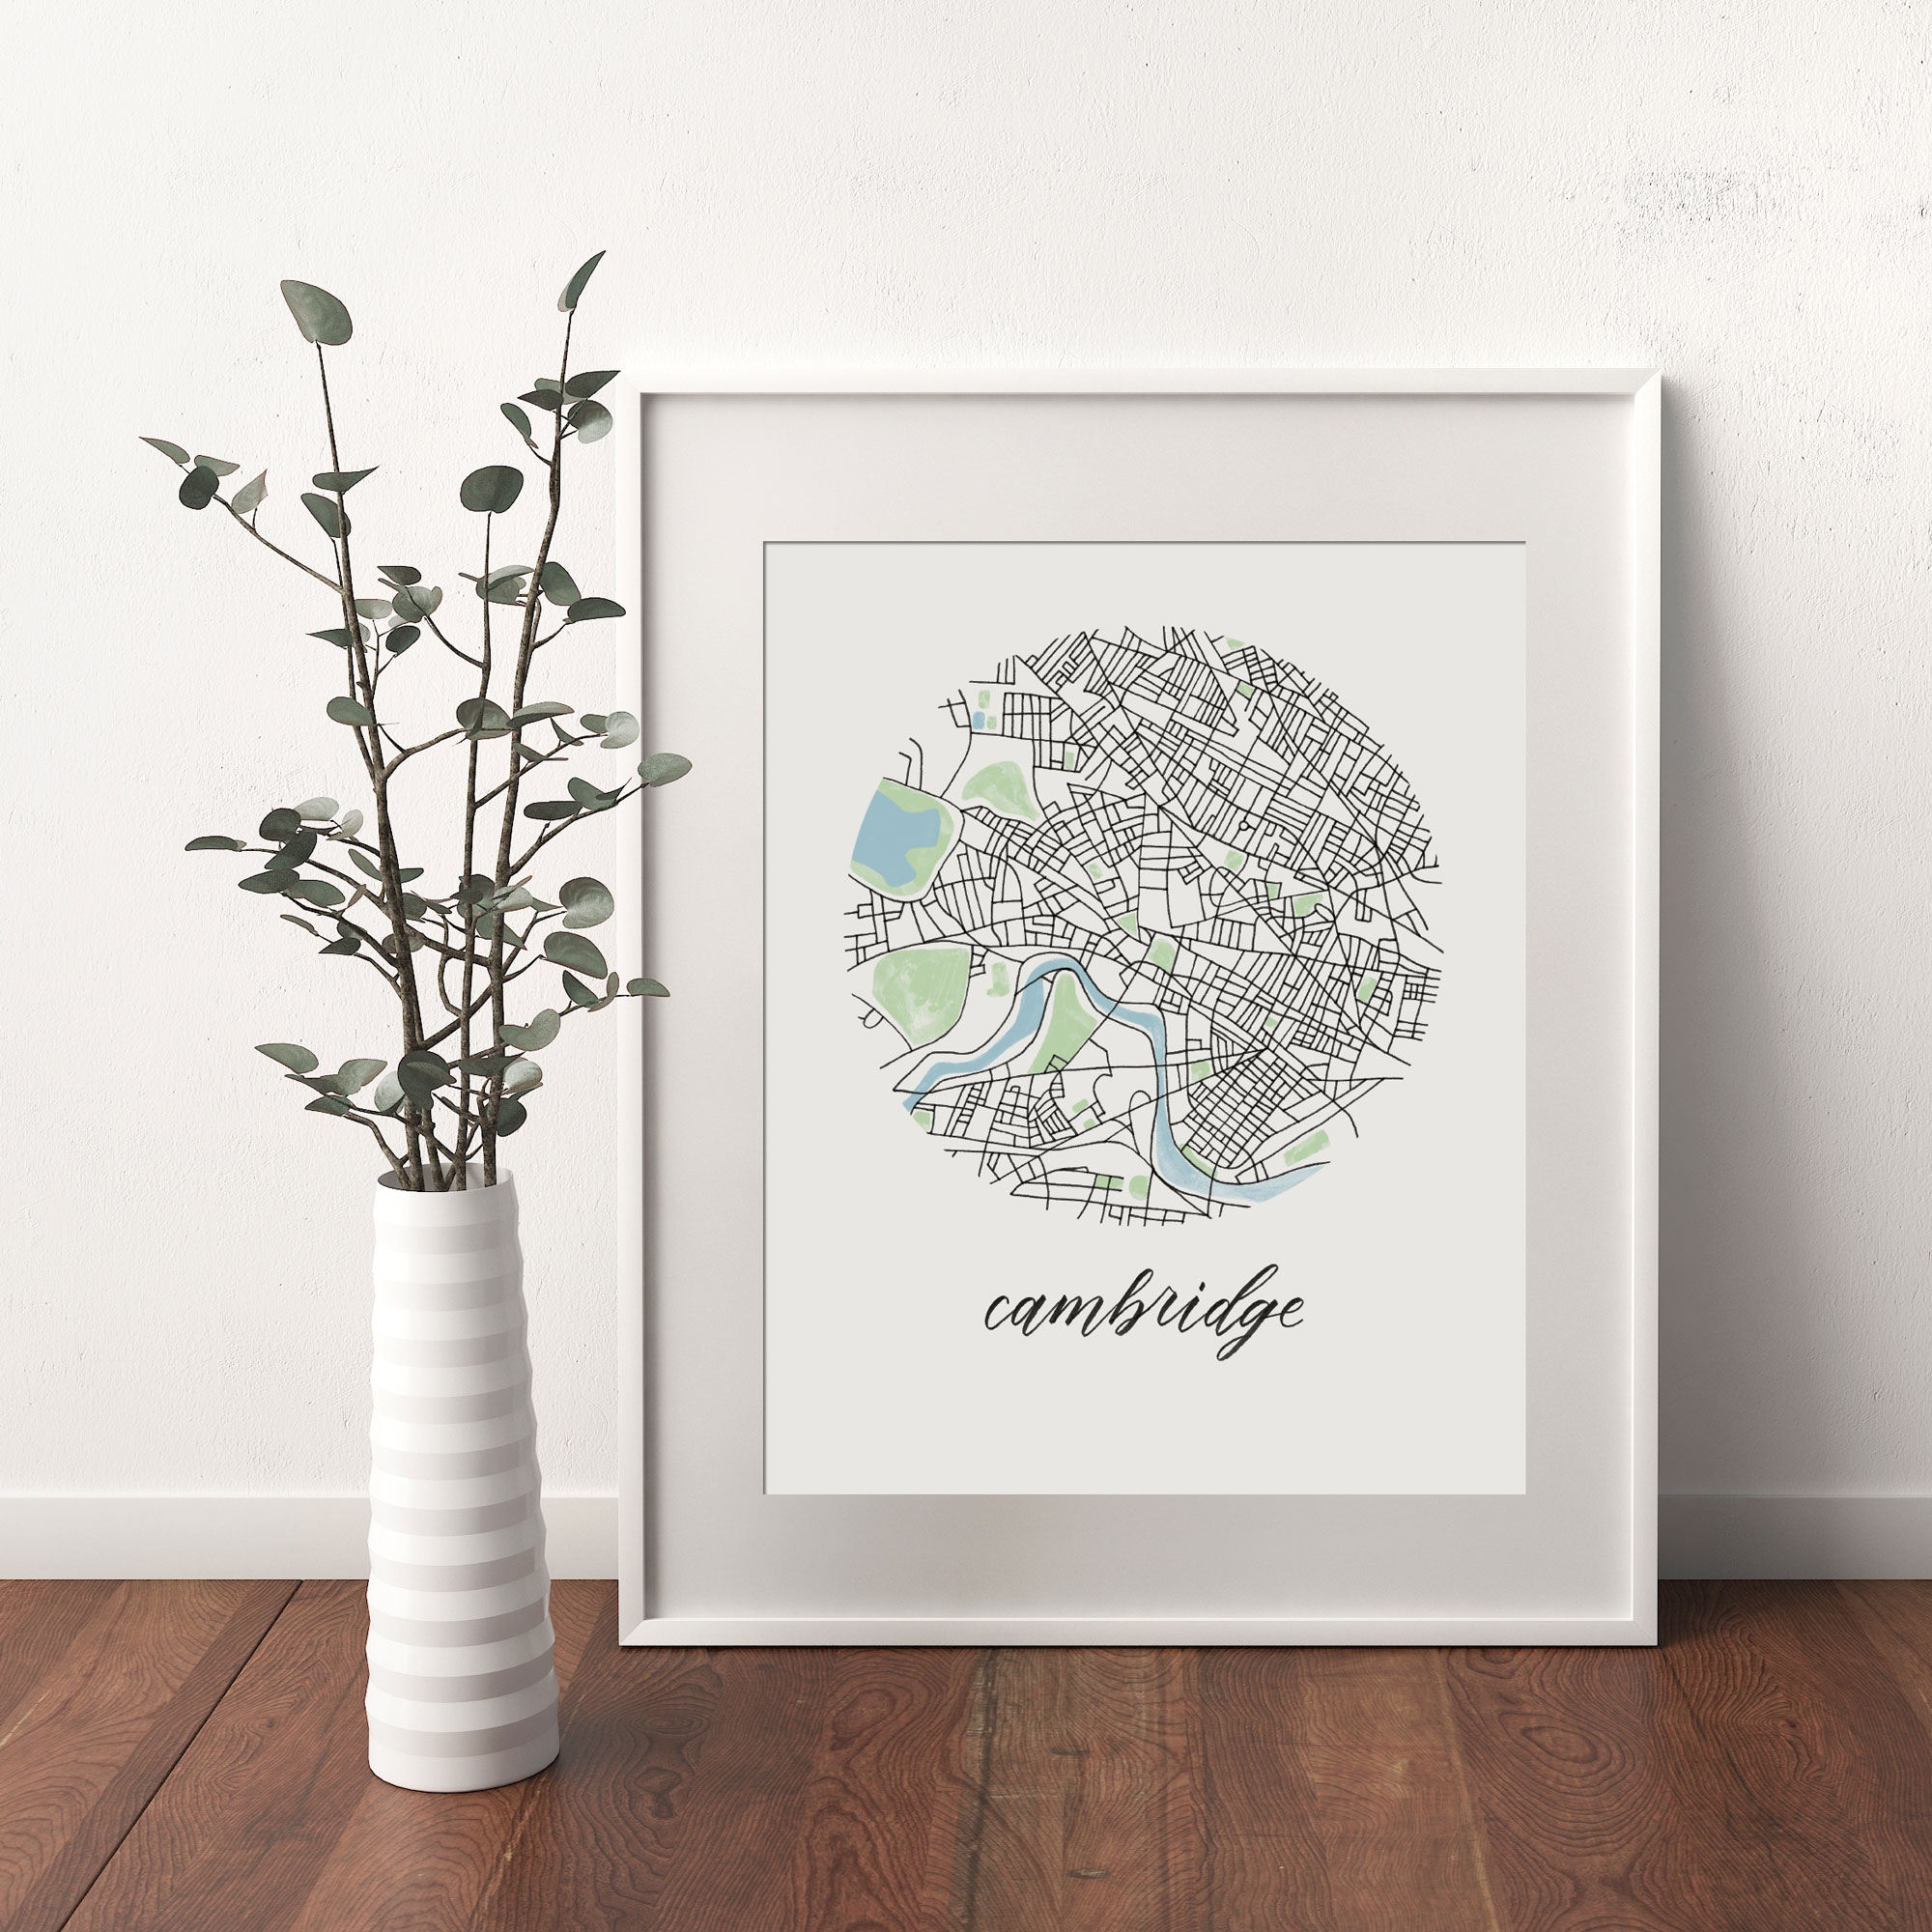 Cambridge, Boston Map print framed and leaning on white wall next to dried leaves in a vase